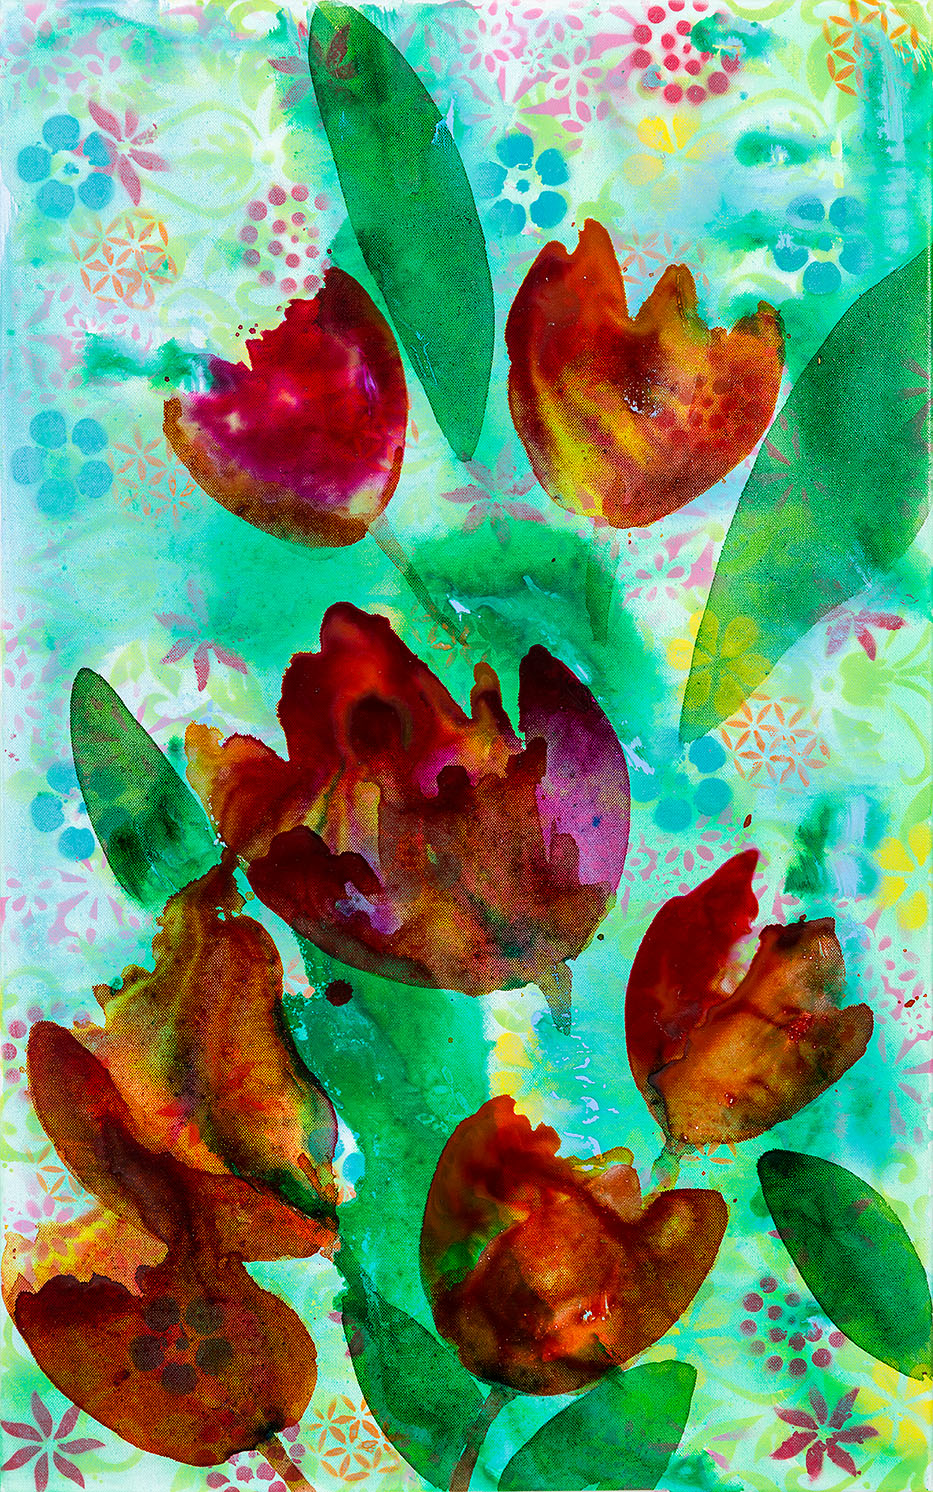 sabine oecking - tulips - 80x50 - 2018